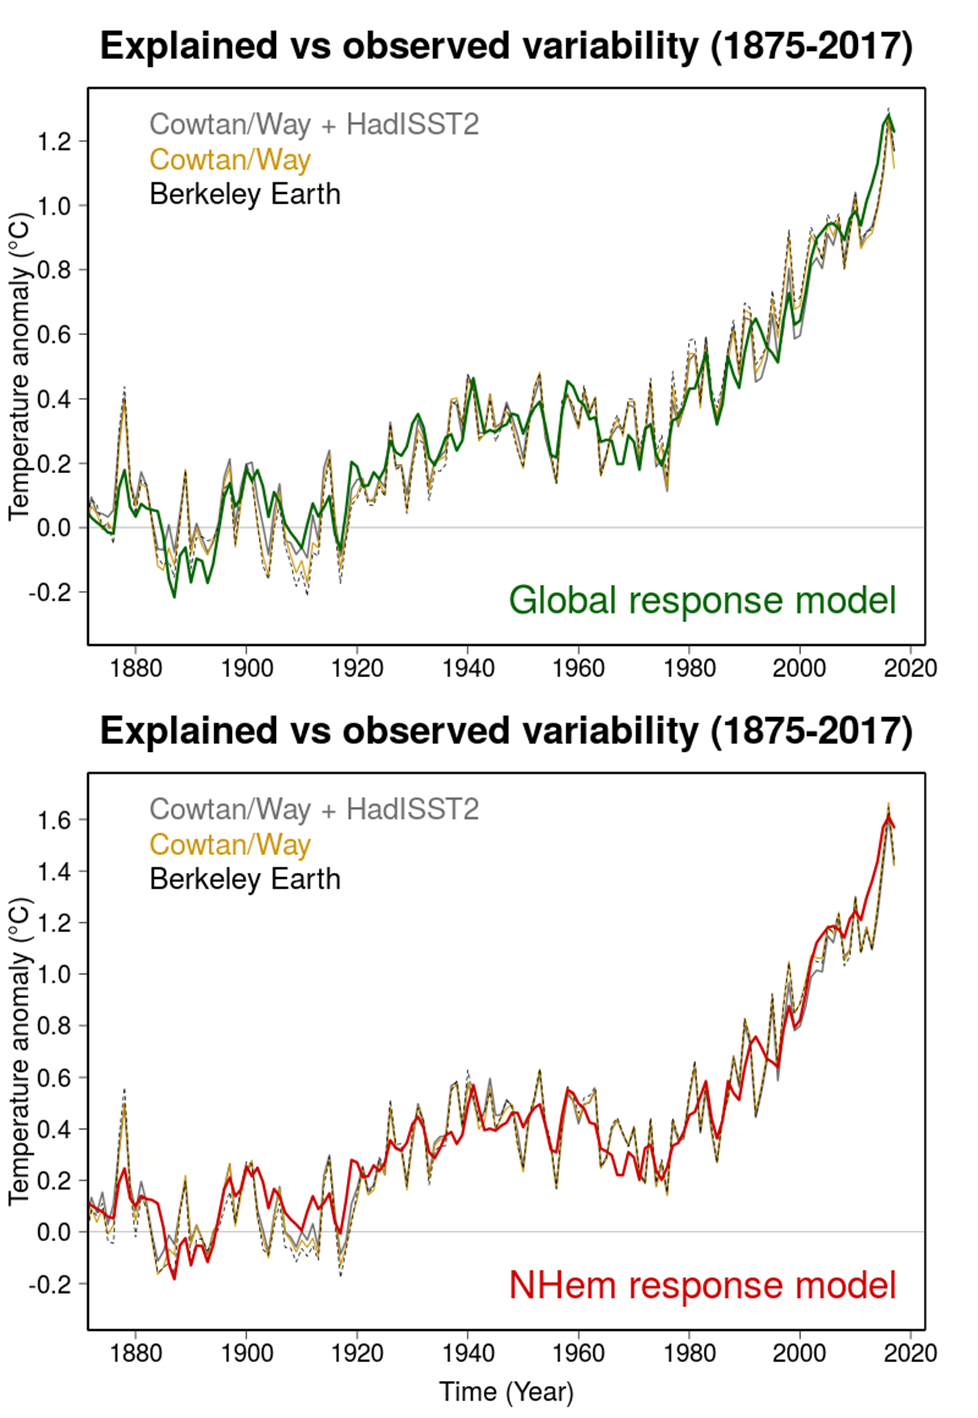 Figure caption: Global (upper panel) and Northern Hemisphere (lower panel) response model result (green bold line) plotted against three observational datasets for the 1875-2017 period: Cowtan/Way land temperature data combined with HadISST2 sea surface temperature data over ocean (grey), standard Cowtan/Way which uses HadSST3 sea surface temperature data over ocean (yellow) and Berkeley Earth global temperature data (black). The anomalies are expressed relative to 1850-1879. El Nino Southern Oscillation index variability is added onto the response model time series.